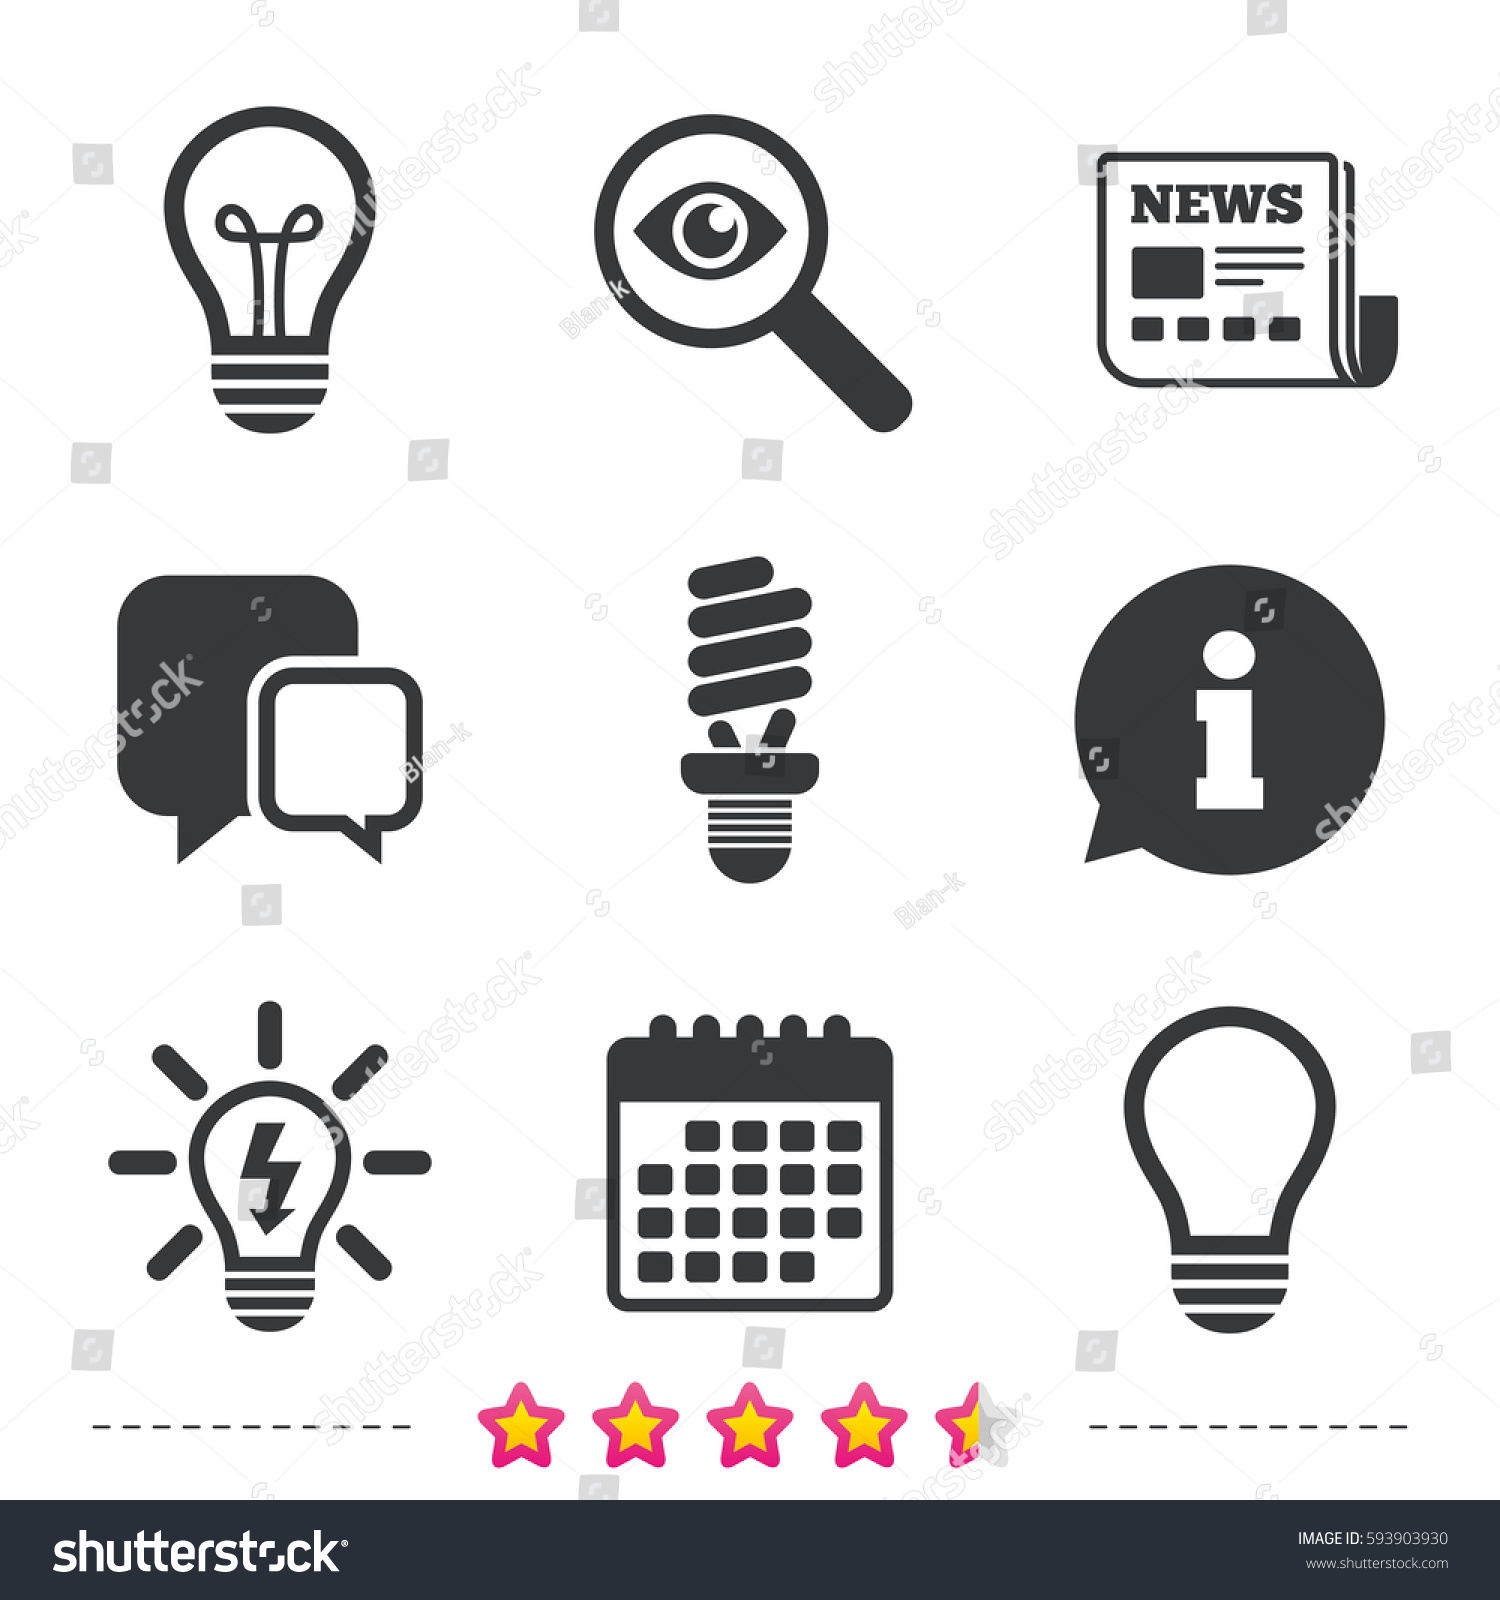 Light Lamp Icons Fluorescent Lamp Bulb Stock Photo (Photo, Vector ...